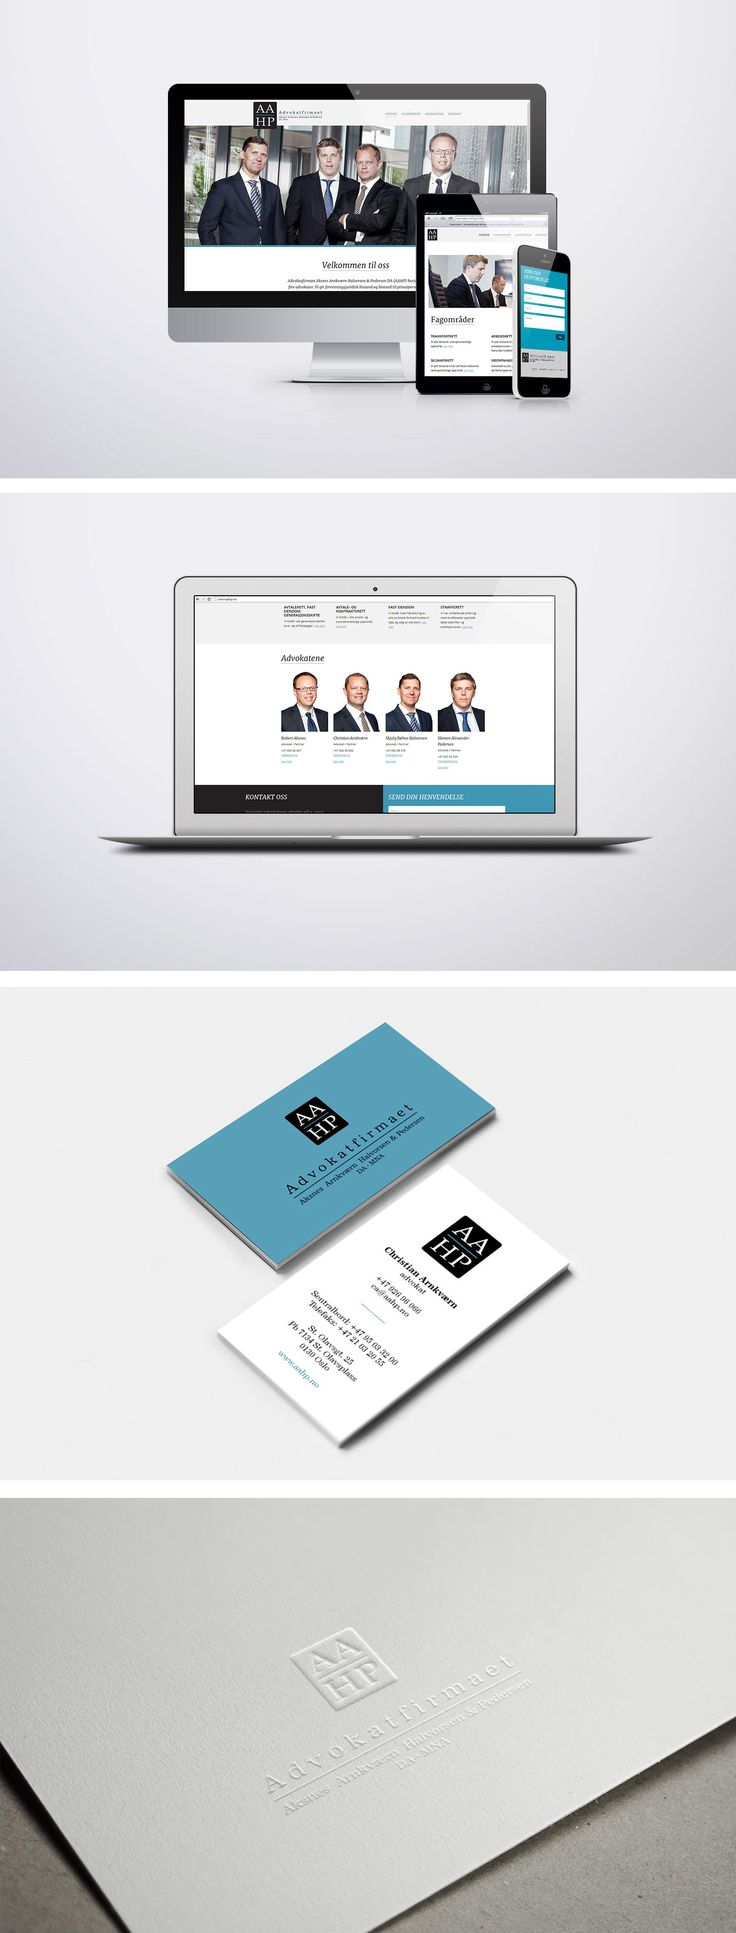 Visual identity #webdesign #businesscard #design #letterheads #web #lawyer #business